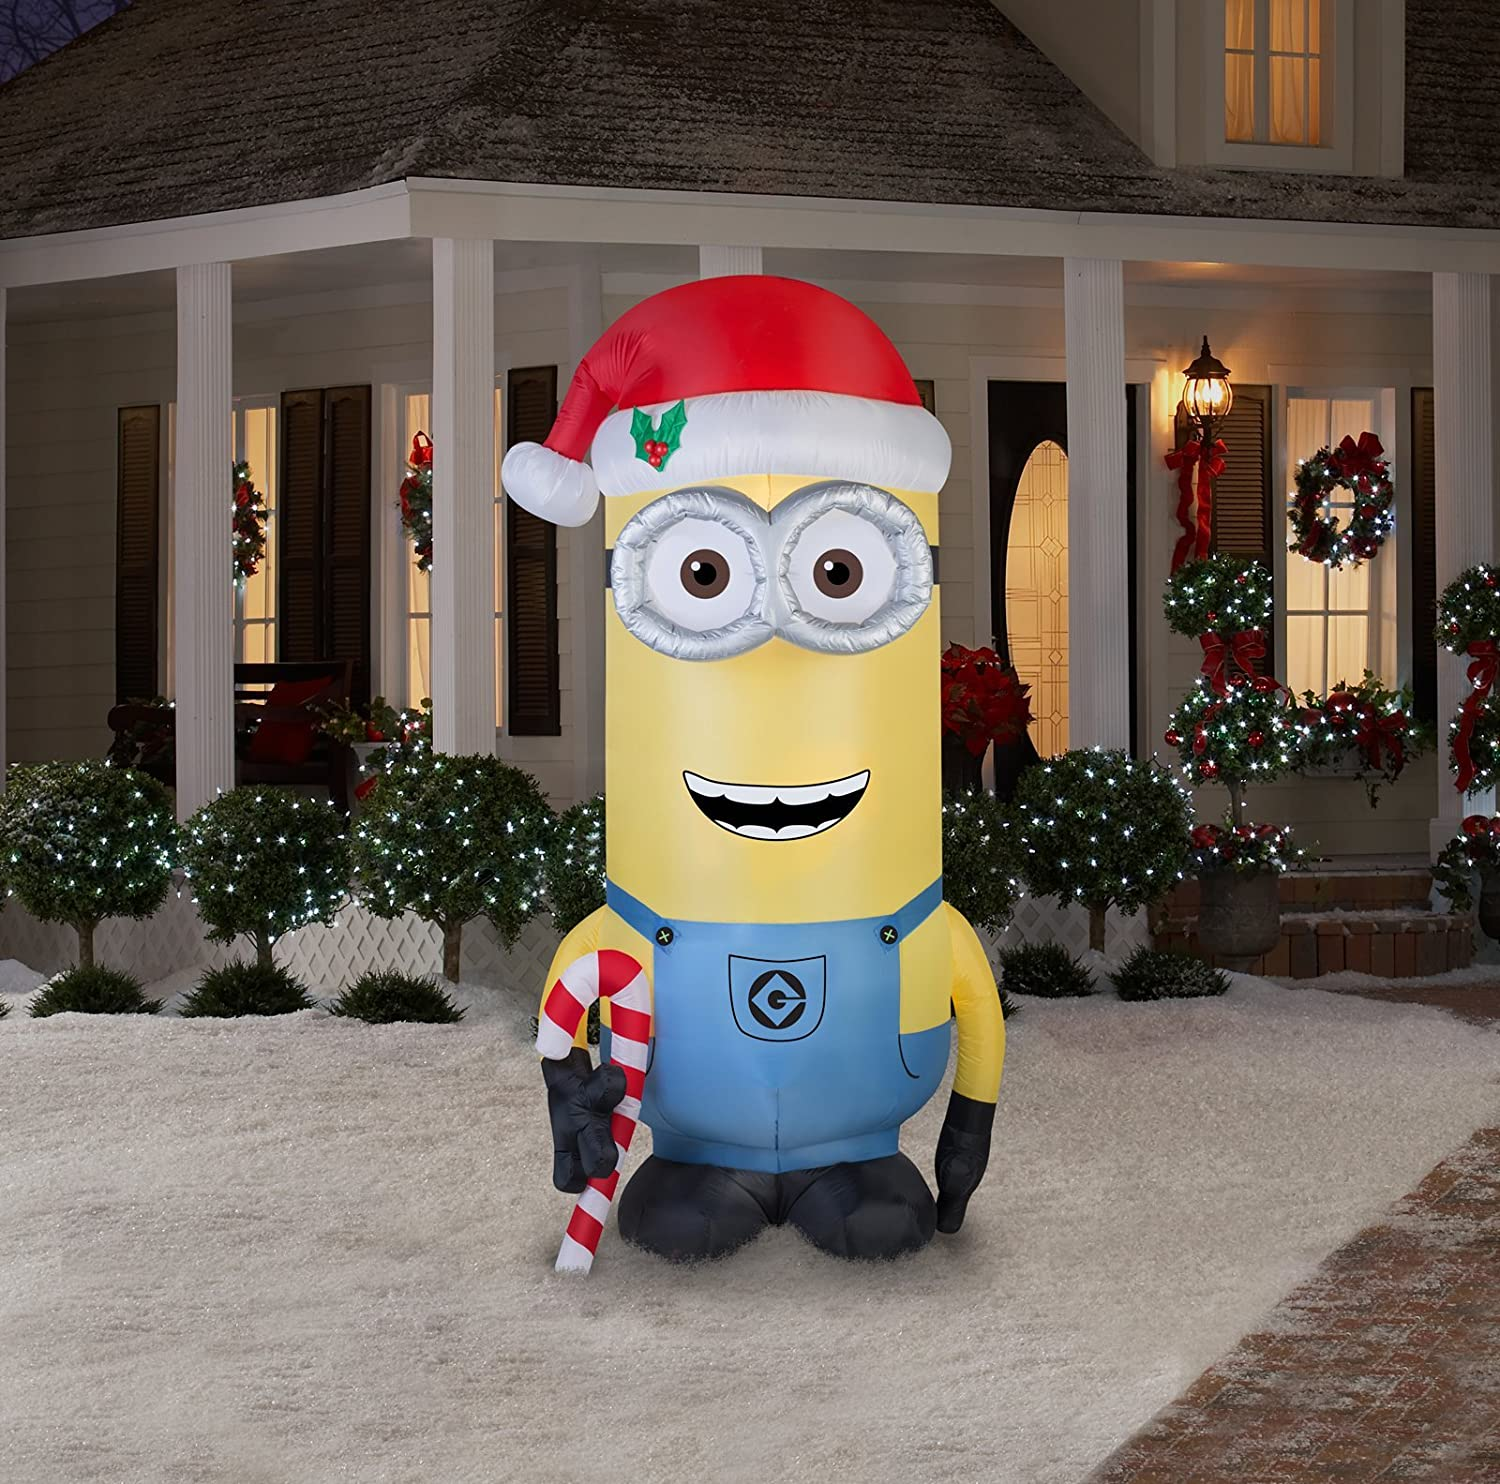 Amazon.com: Gemmy Airblown Inflatable Kevin the Minion Holding a ...